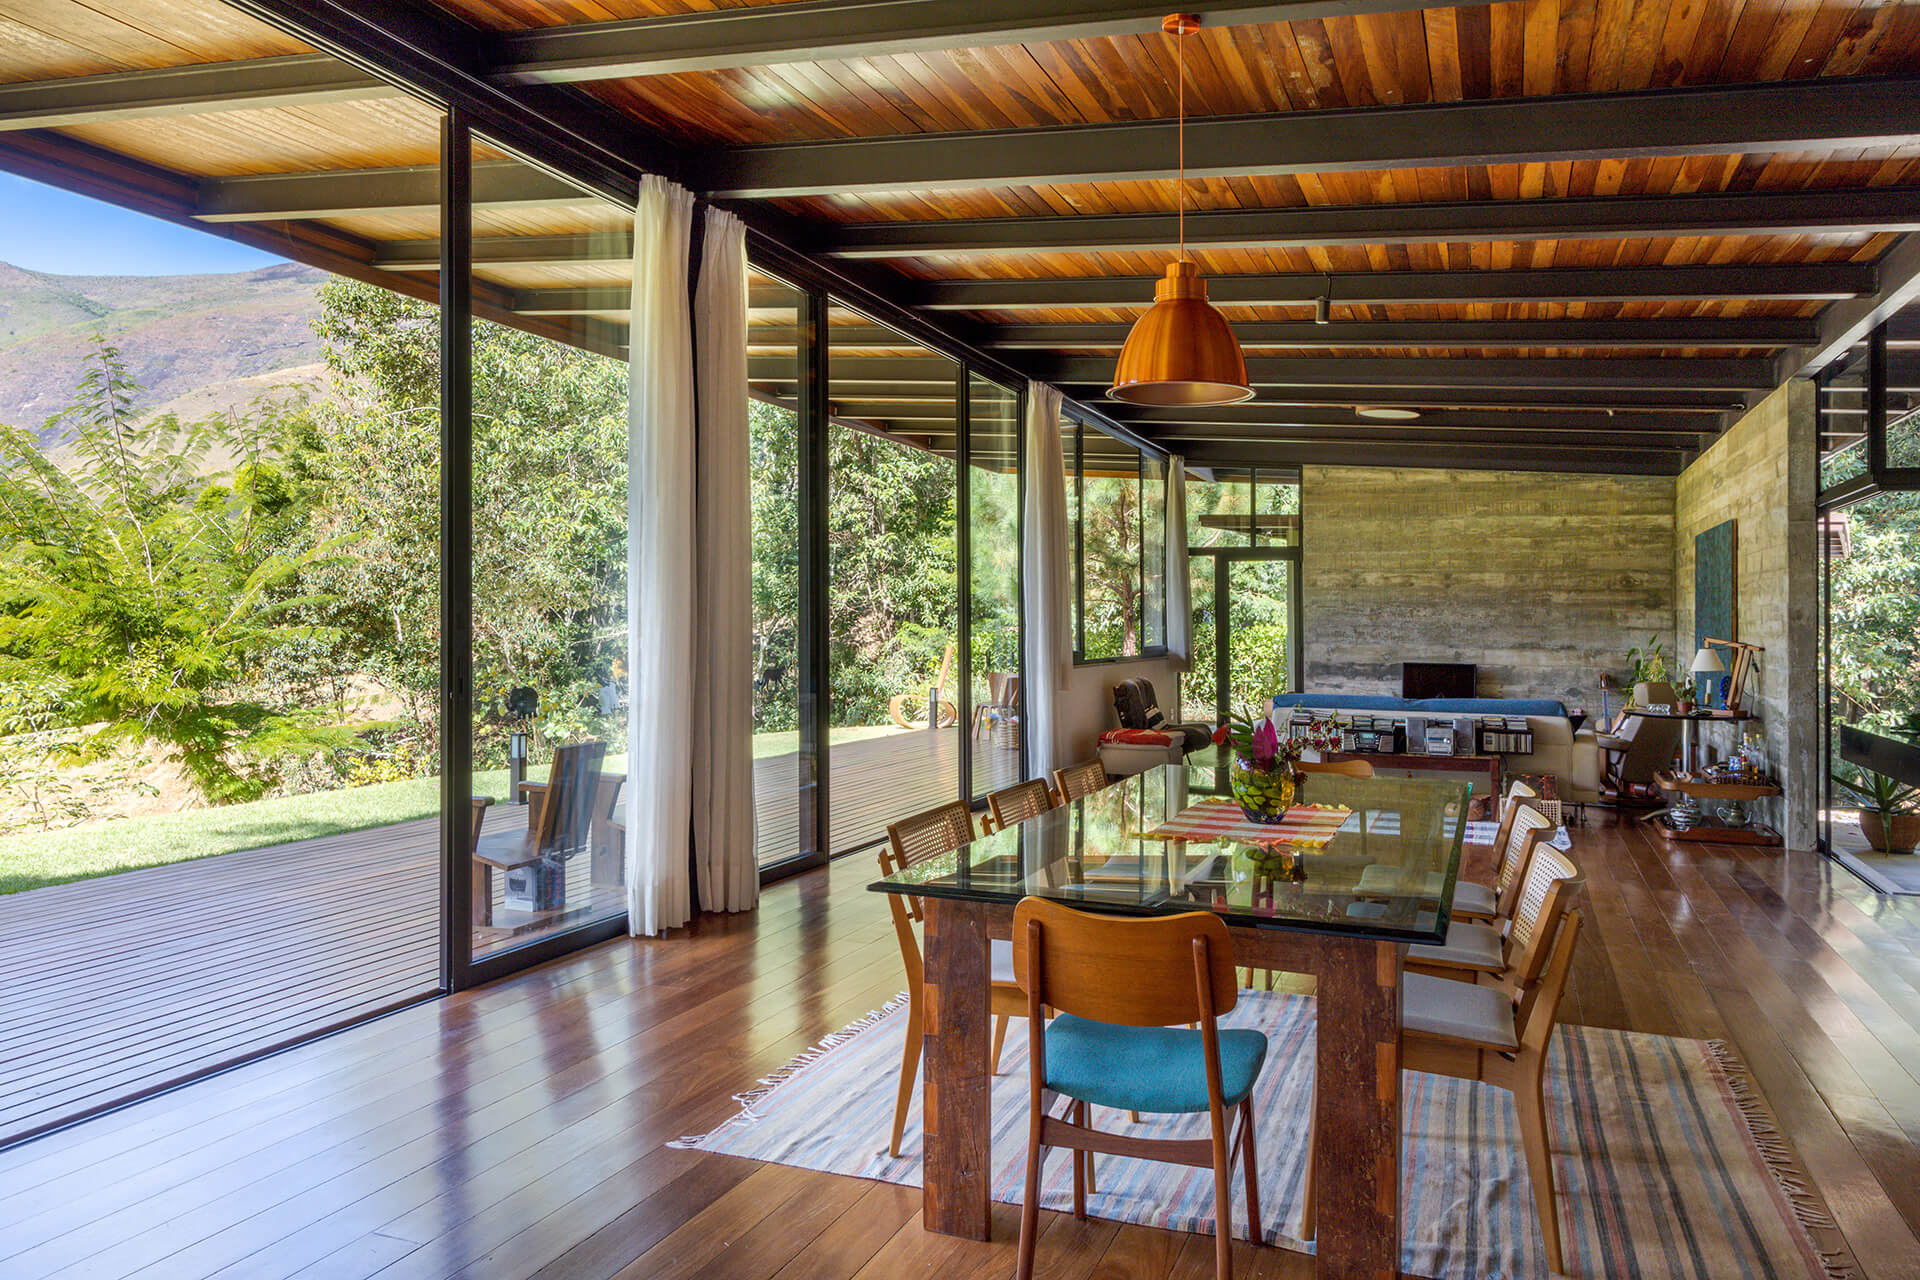 The kitchen and dining space is open to the verandah and the living room | House in Vale das Videiras by Rodrigo Simão Arquitetura | STIRworld